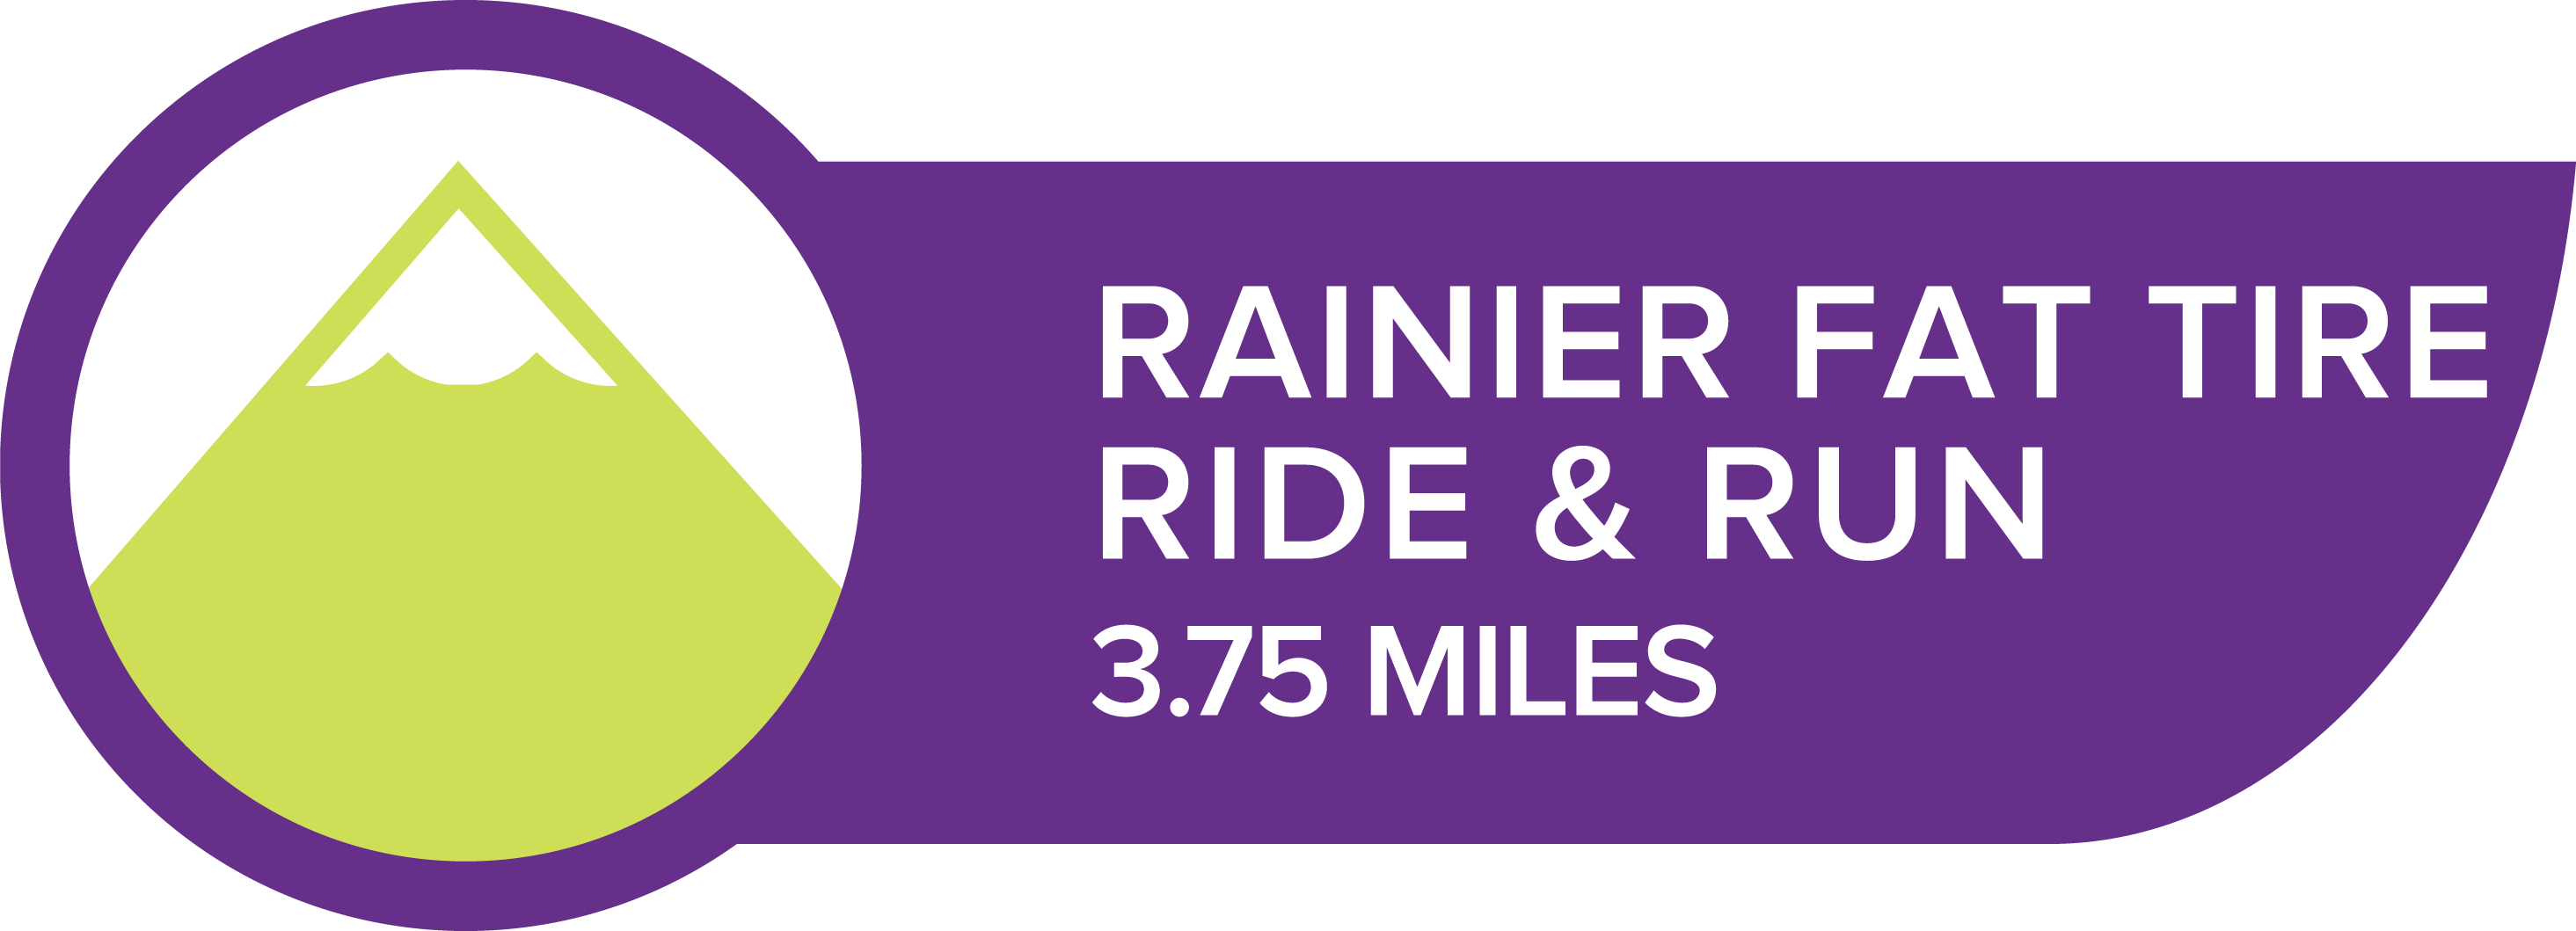 rainier badge